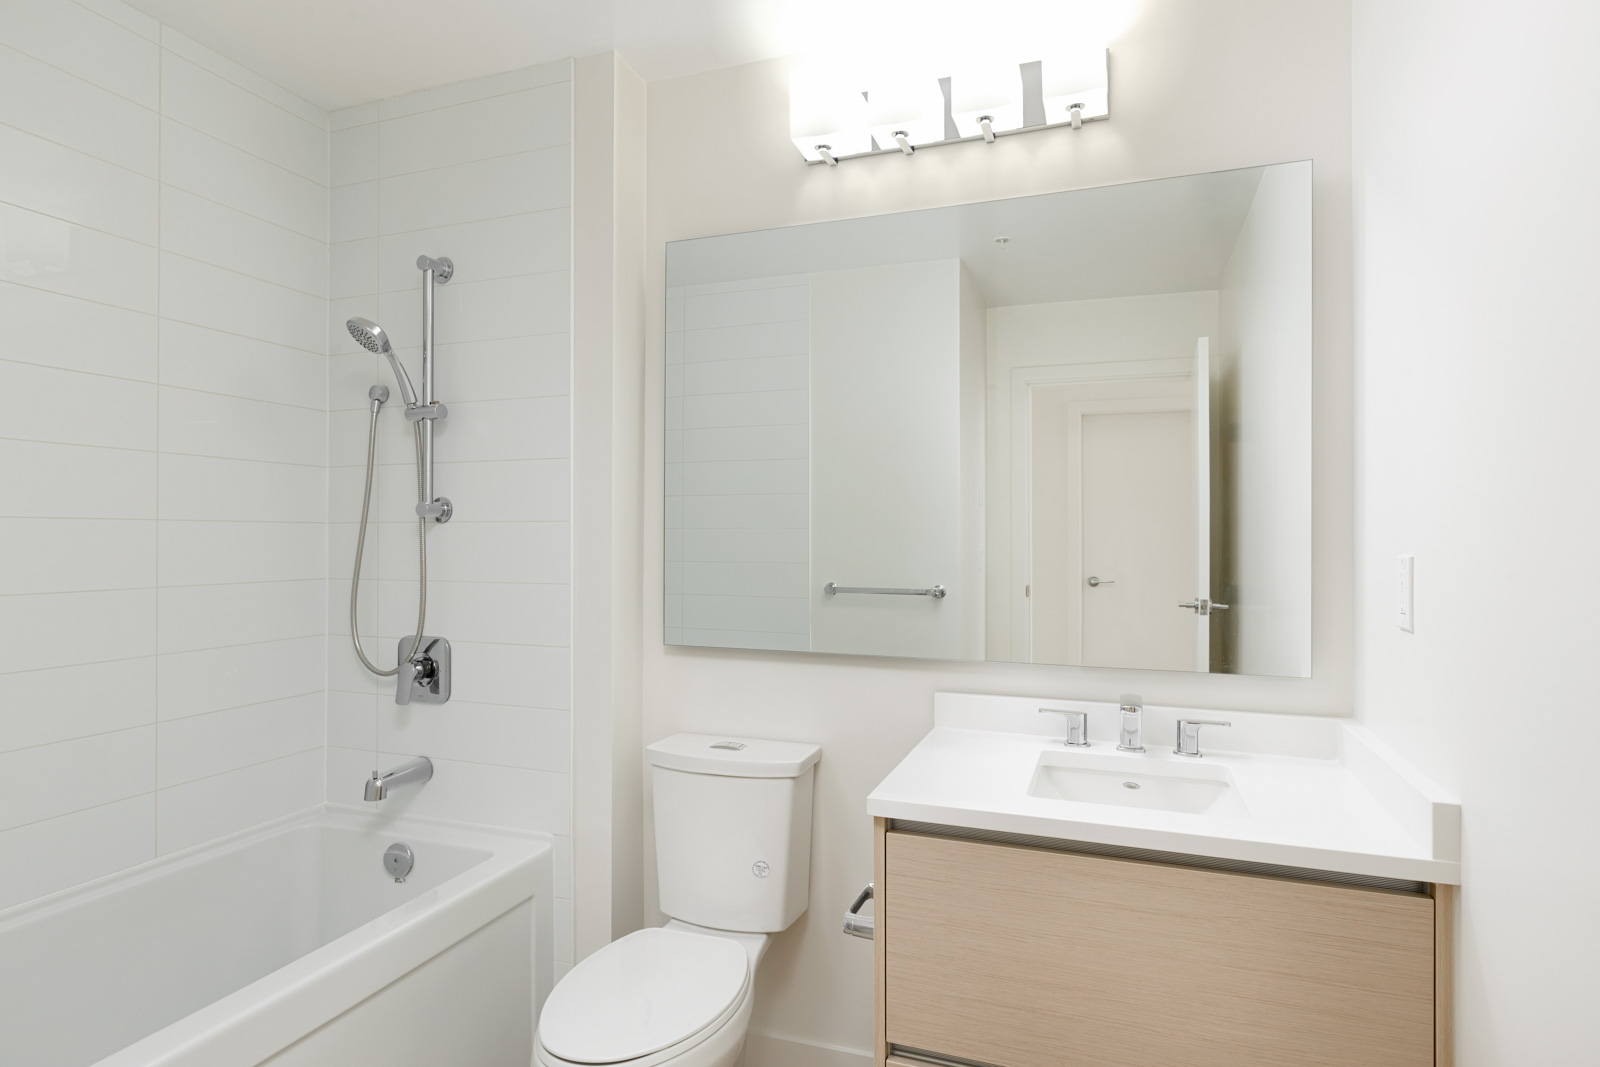 Newly finished bathroom at Burnaby Mountain rental condo.